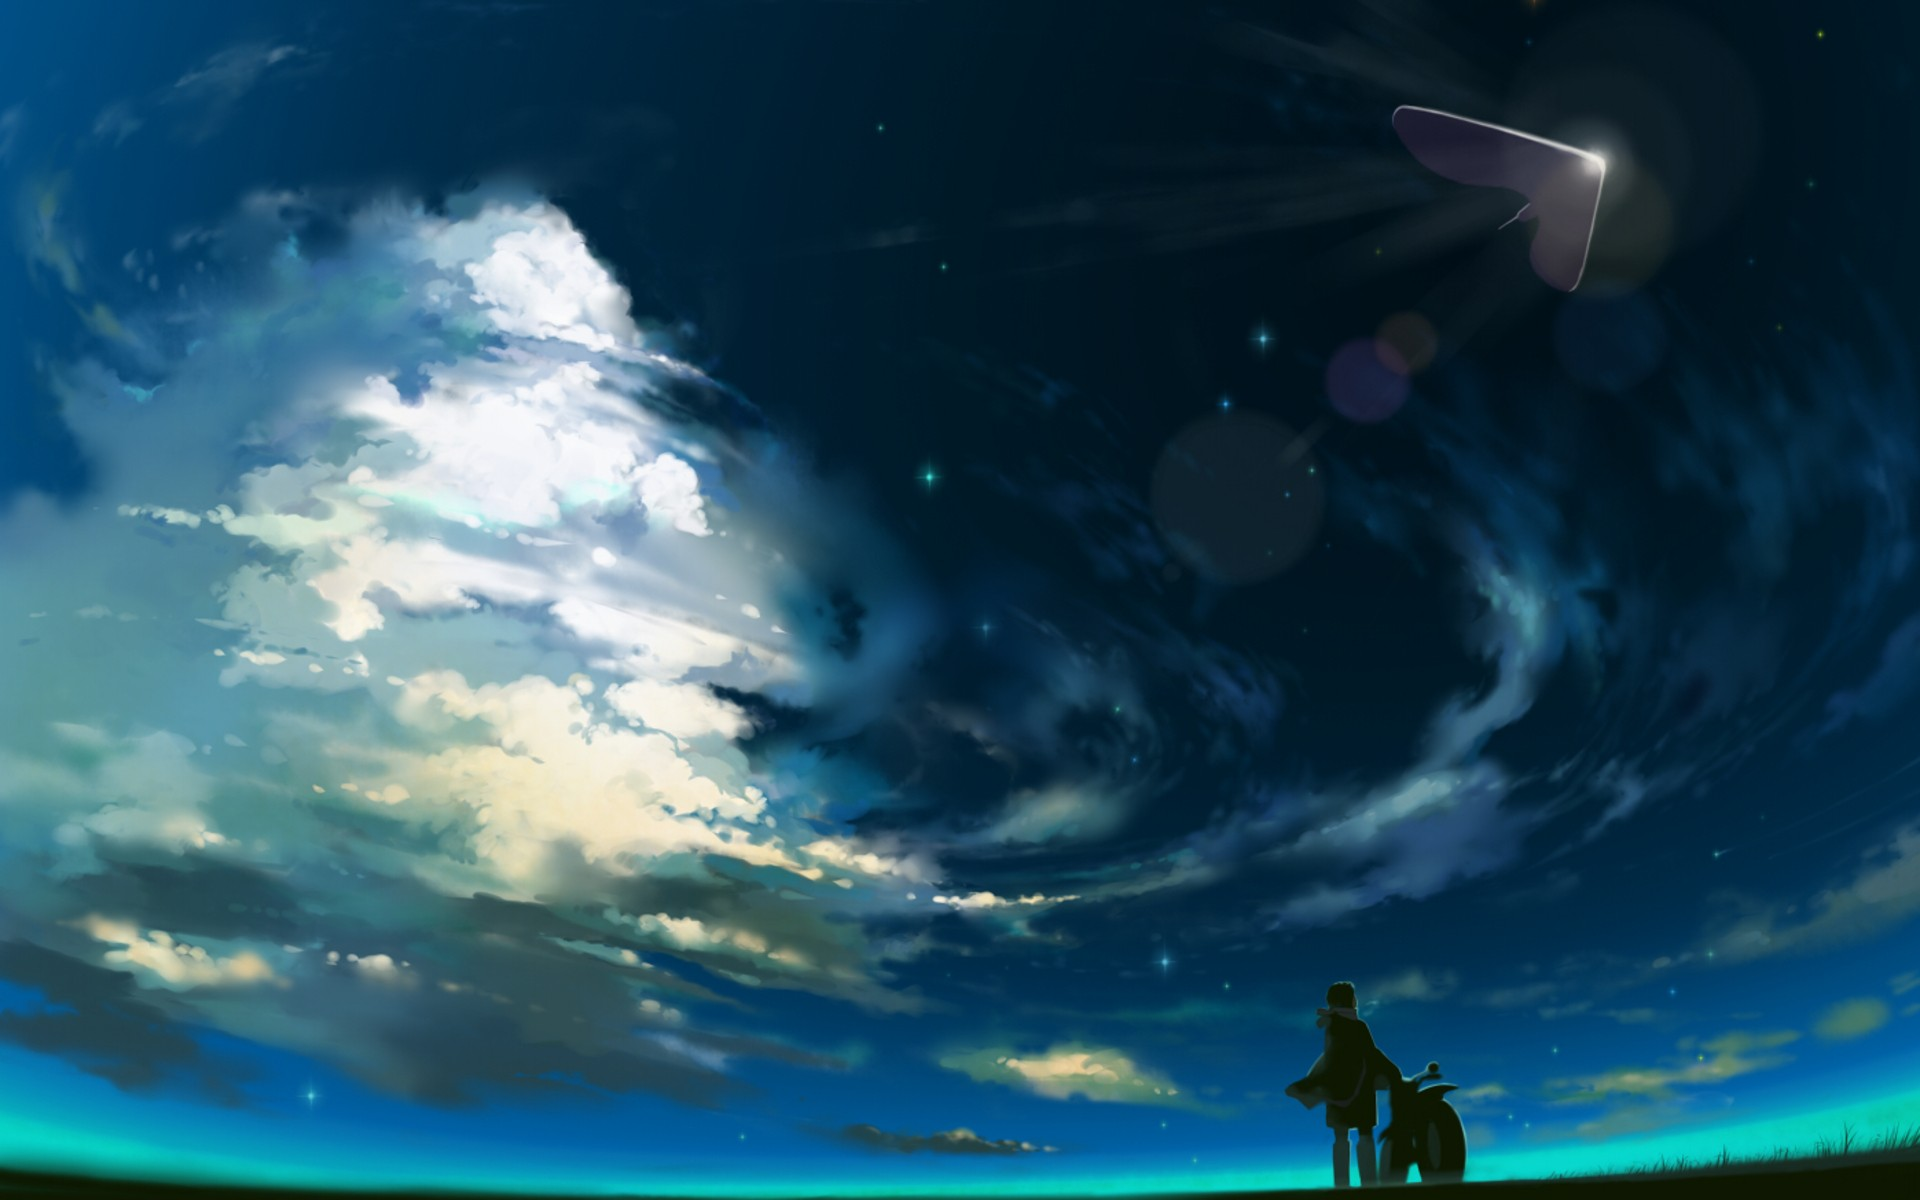 1920x1200 Beautiful Anime Scenery Wallpaper & Dark Anime background Scenery ·① Download free stunning wallpapers ...